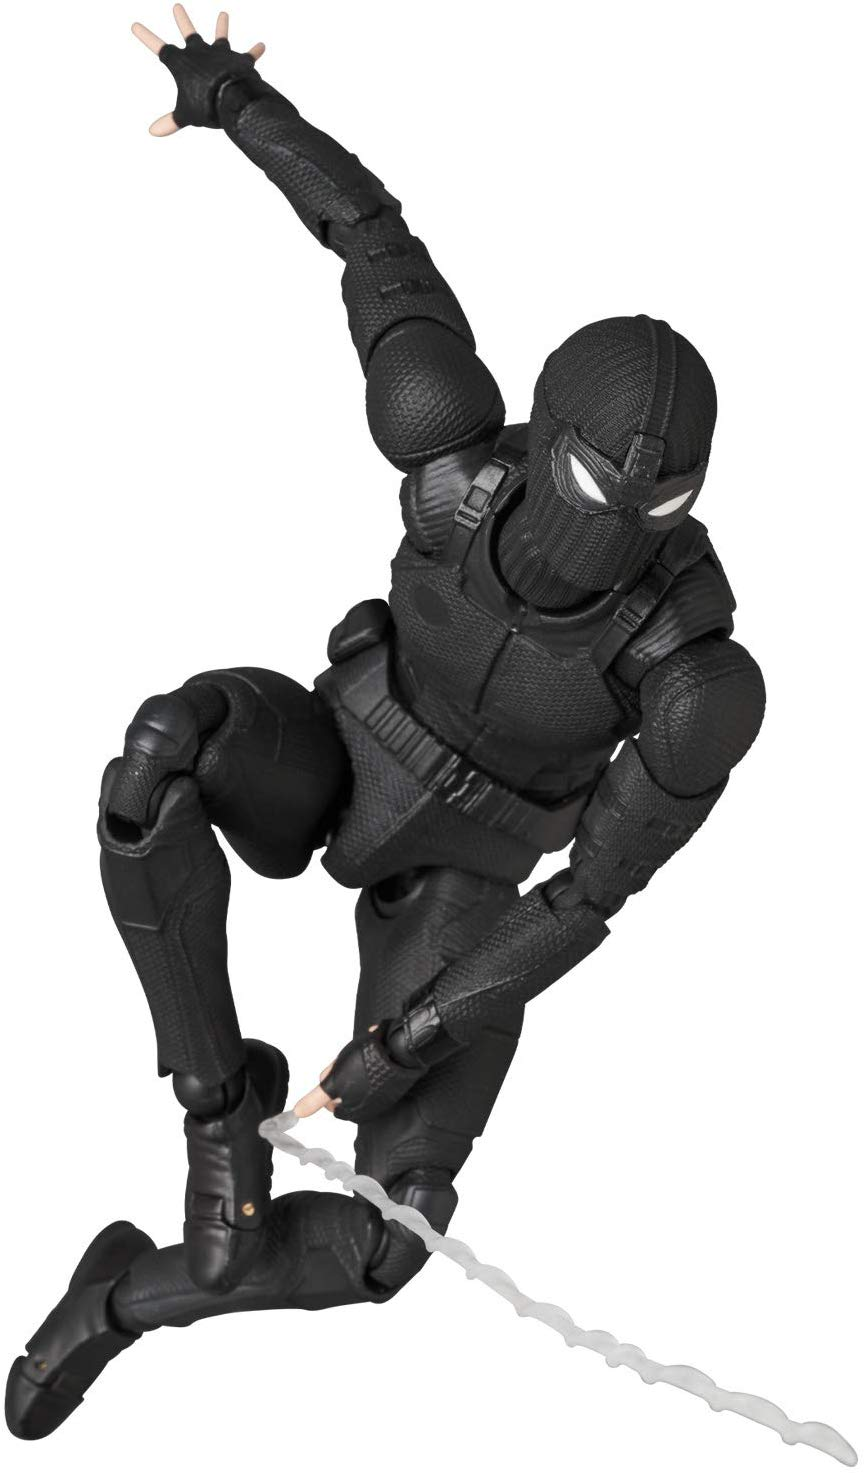 MAFEX-Stealth-Suit-Spider-Man-008